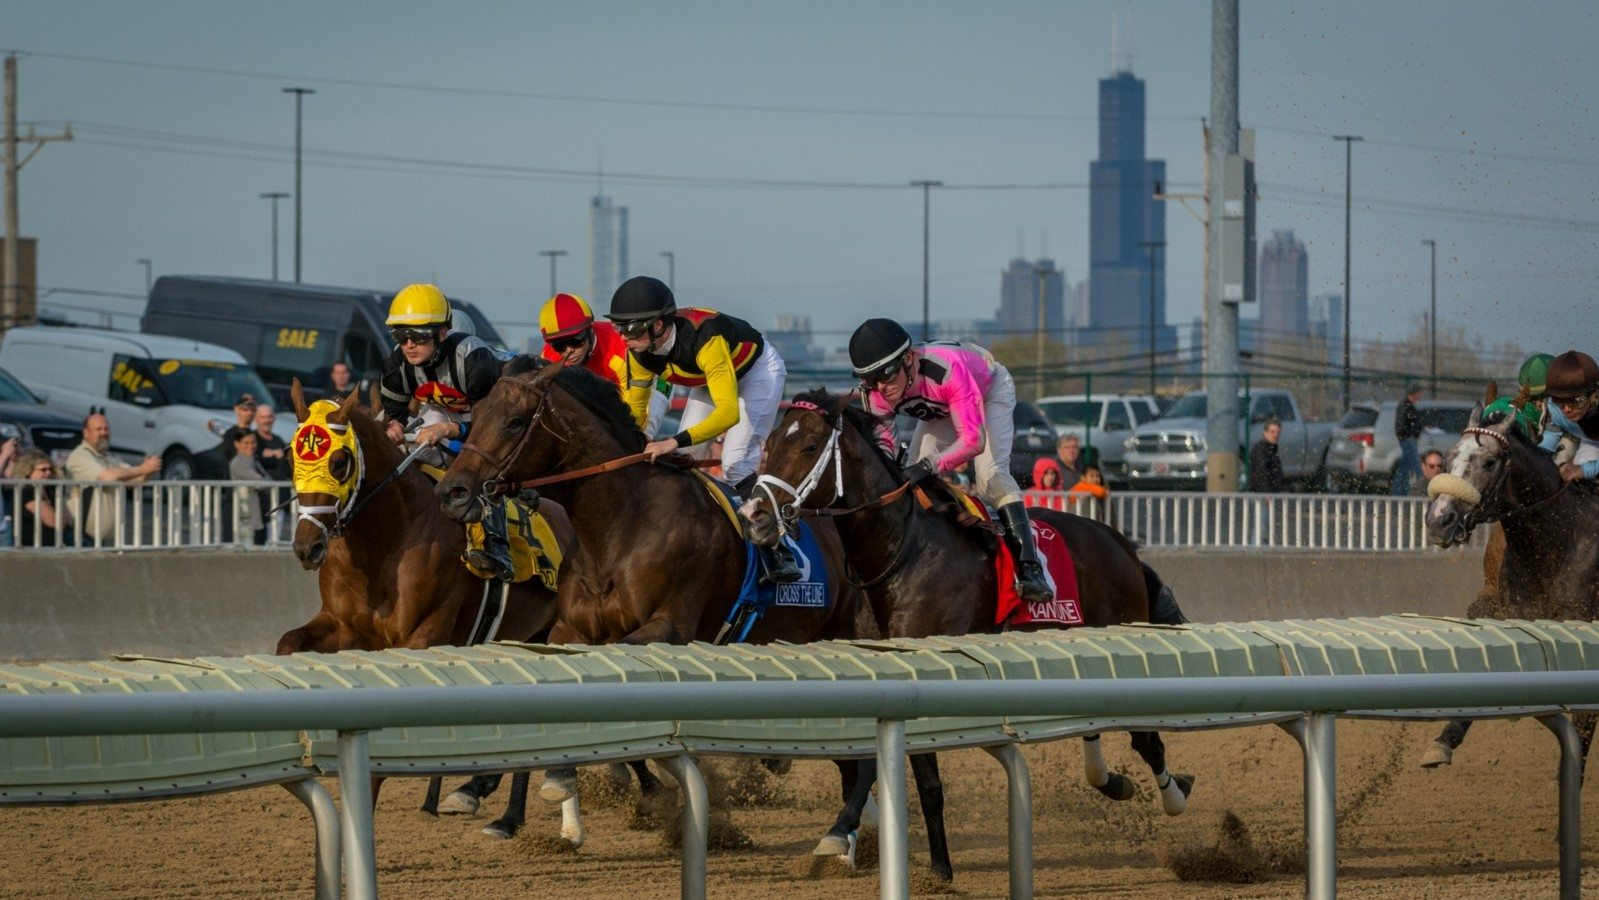 off track horse betting illinois primary